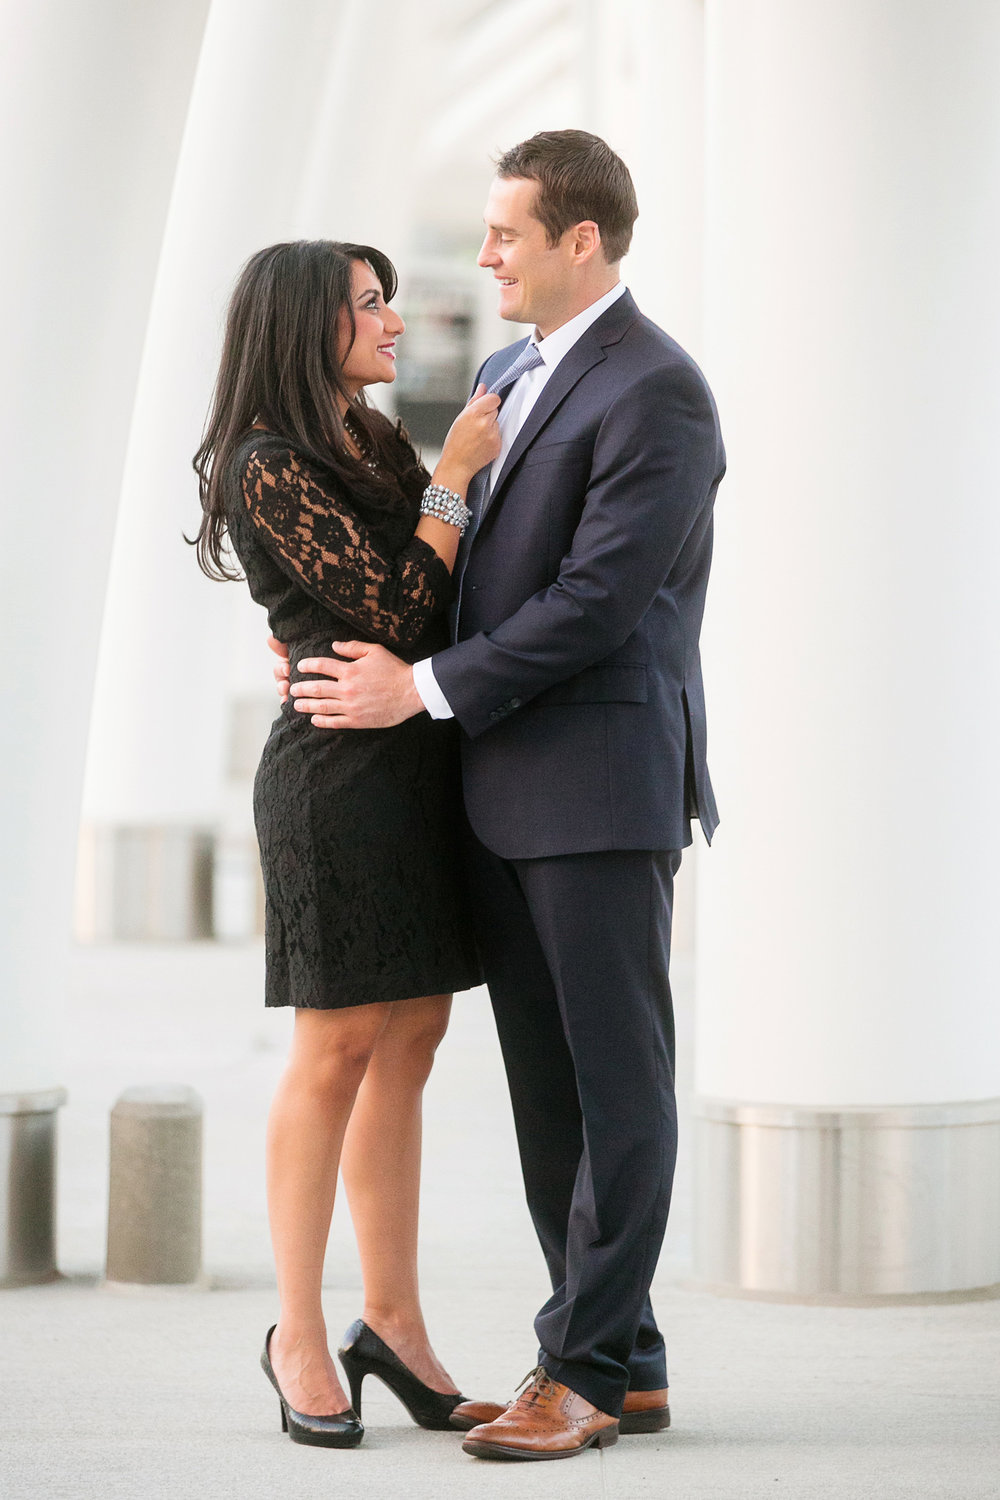 downtown-denver-engagement-photos-kw-014.jpg